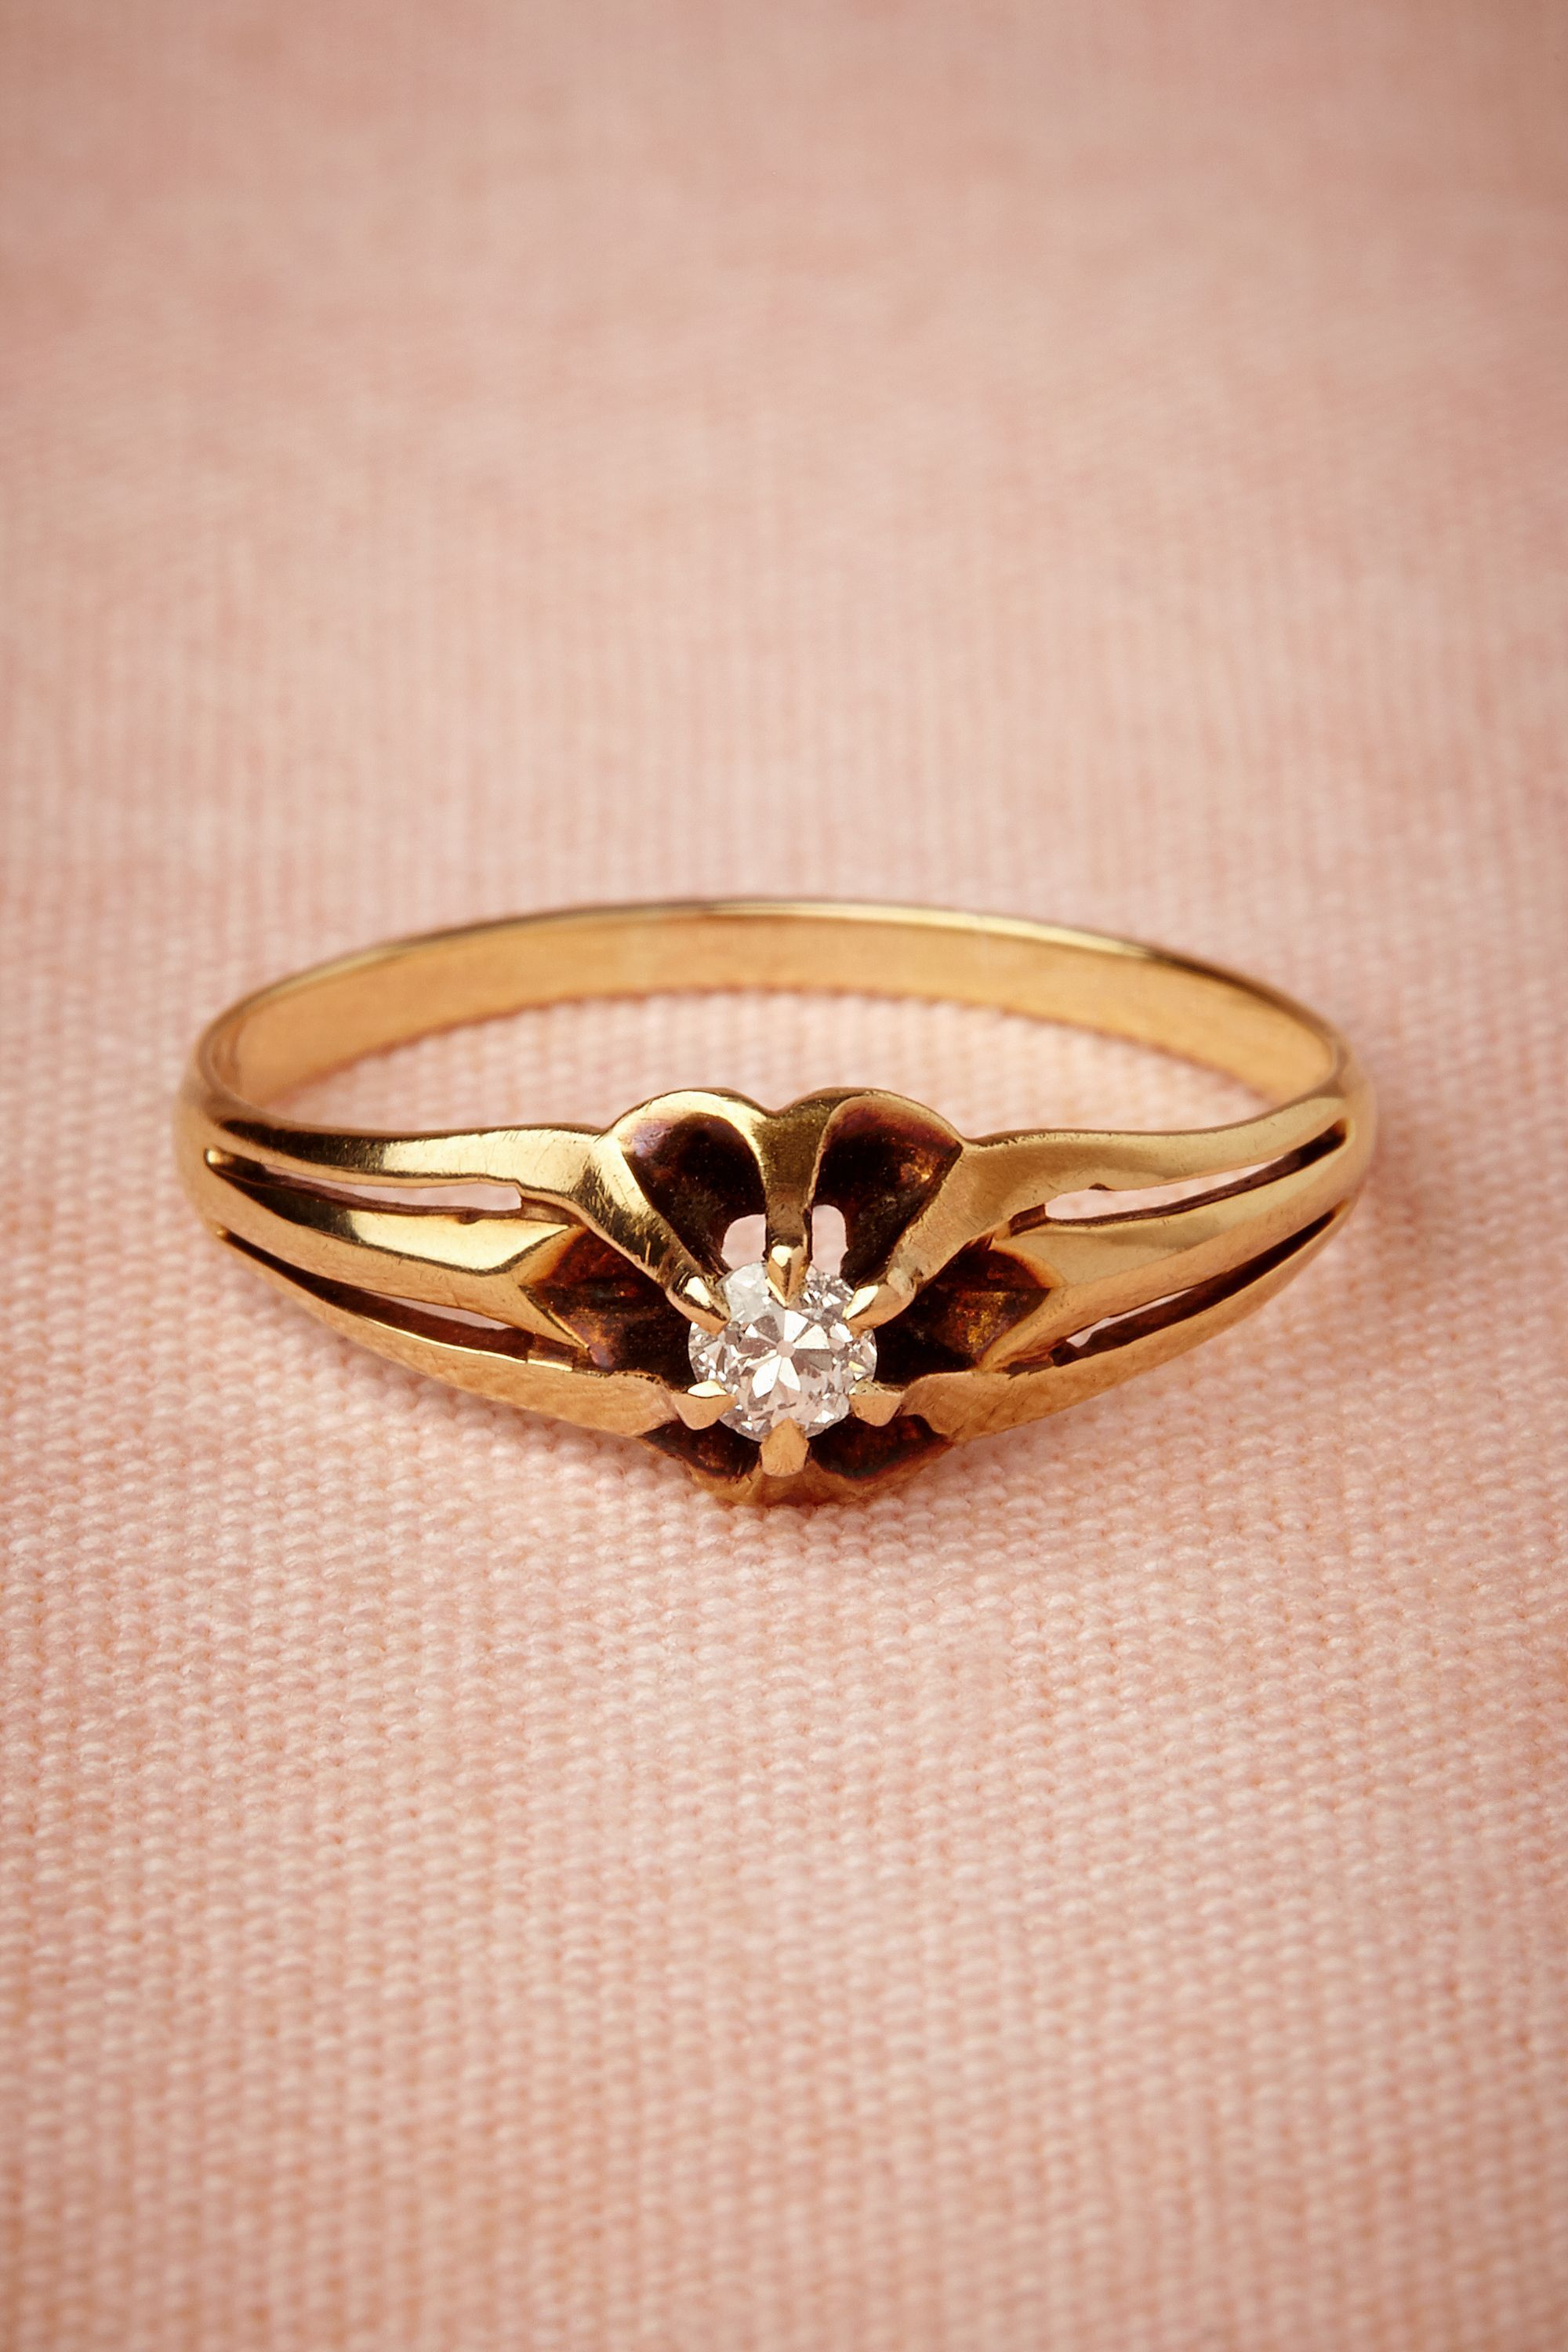 10 fbeat Engagement Rings Perfect For A Valentine s Day Proposal